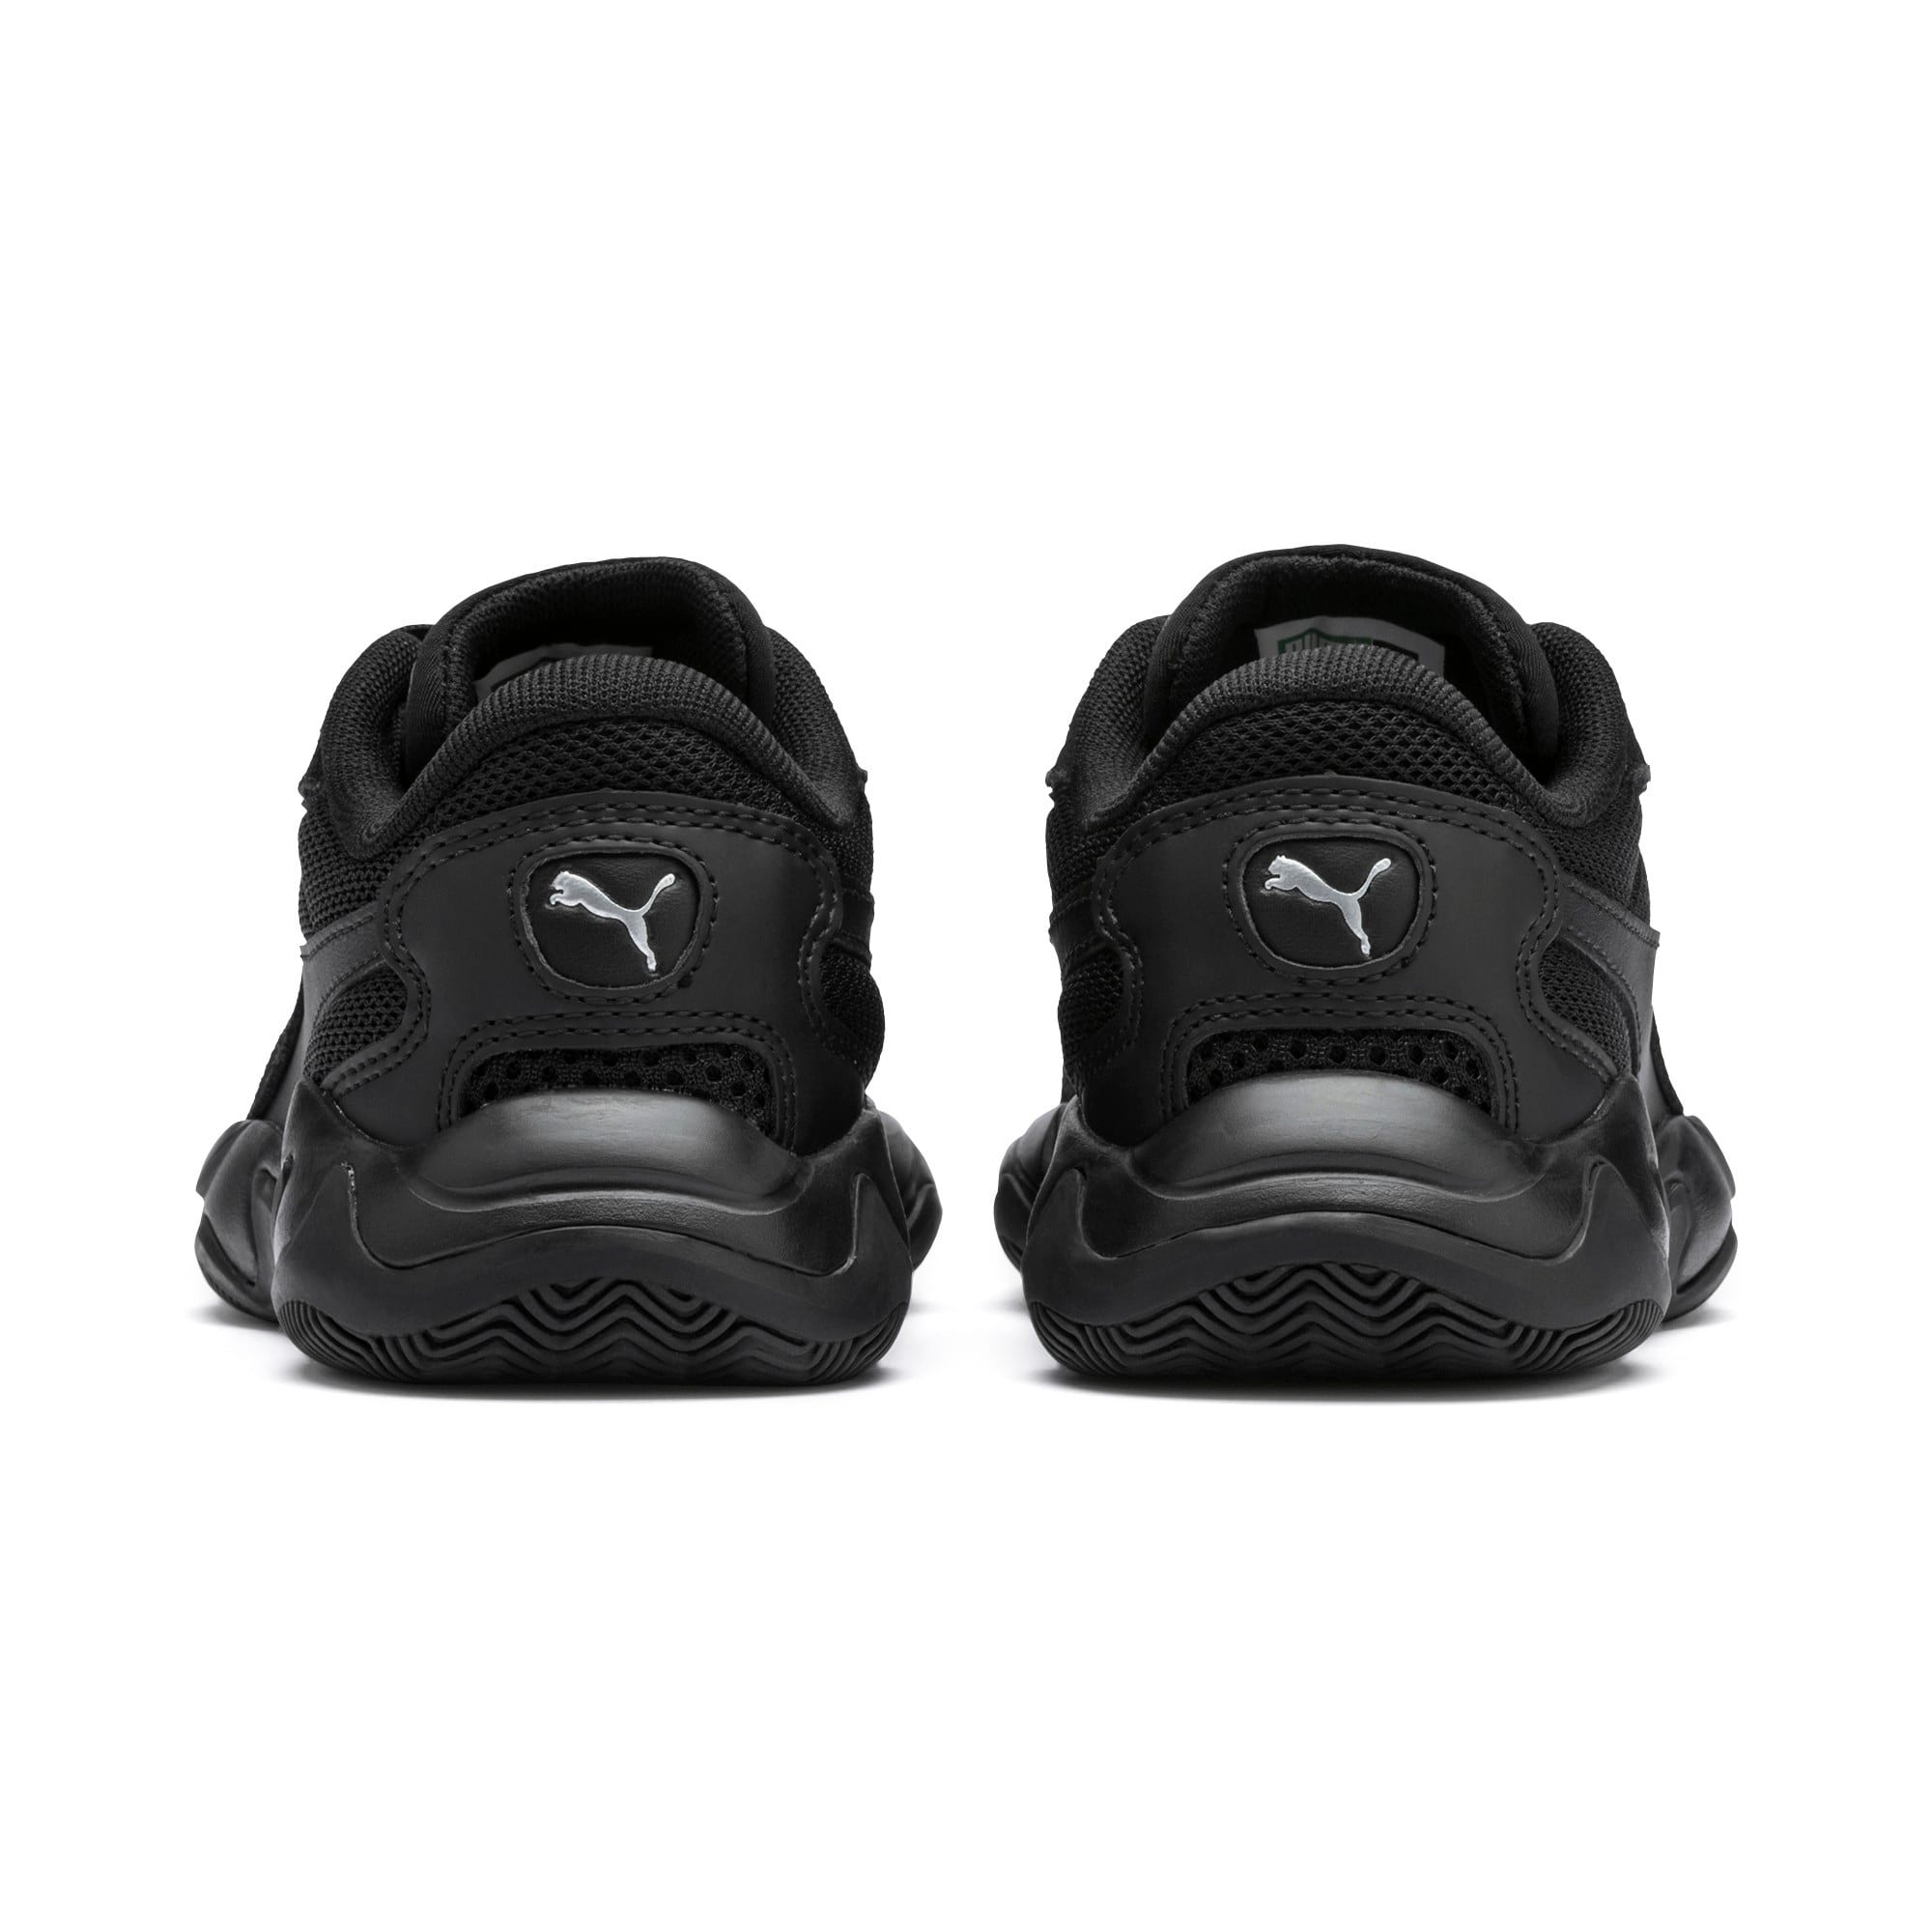 Thumbnail 3 van Storm Origin kindersportschoenen, Puma Black, medium